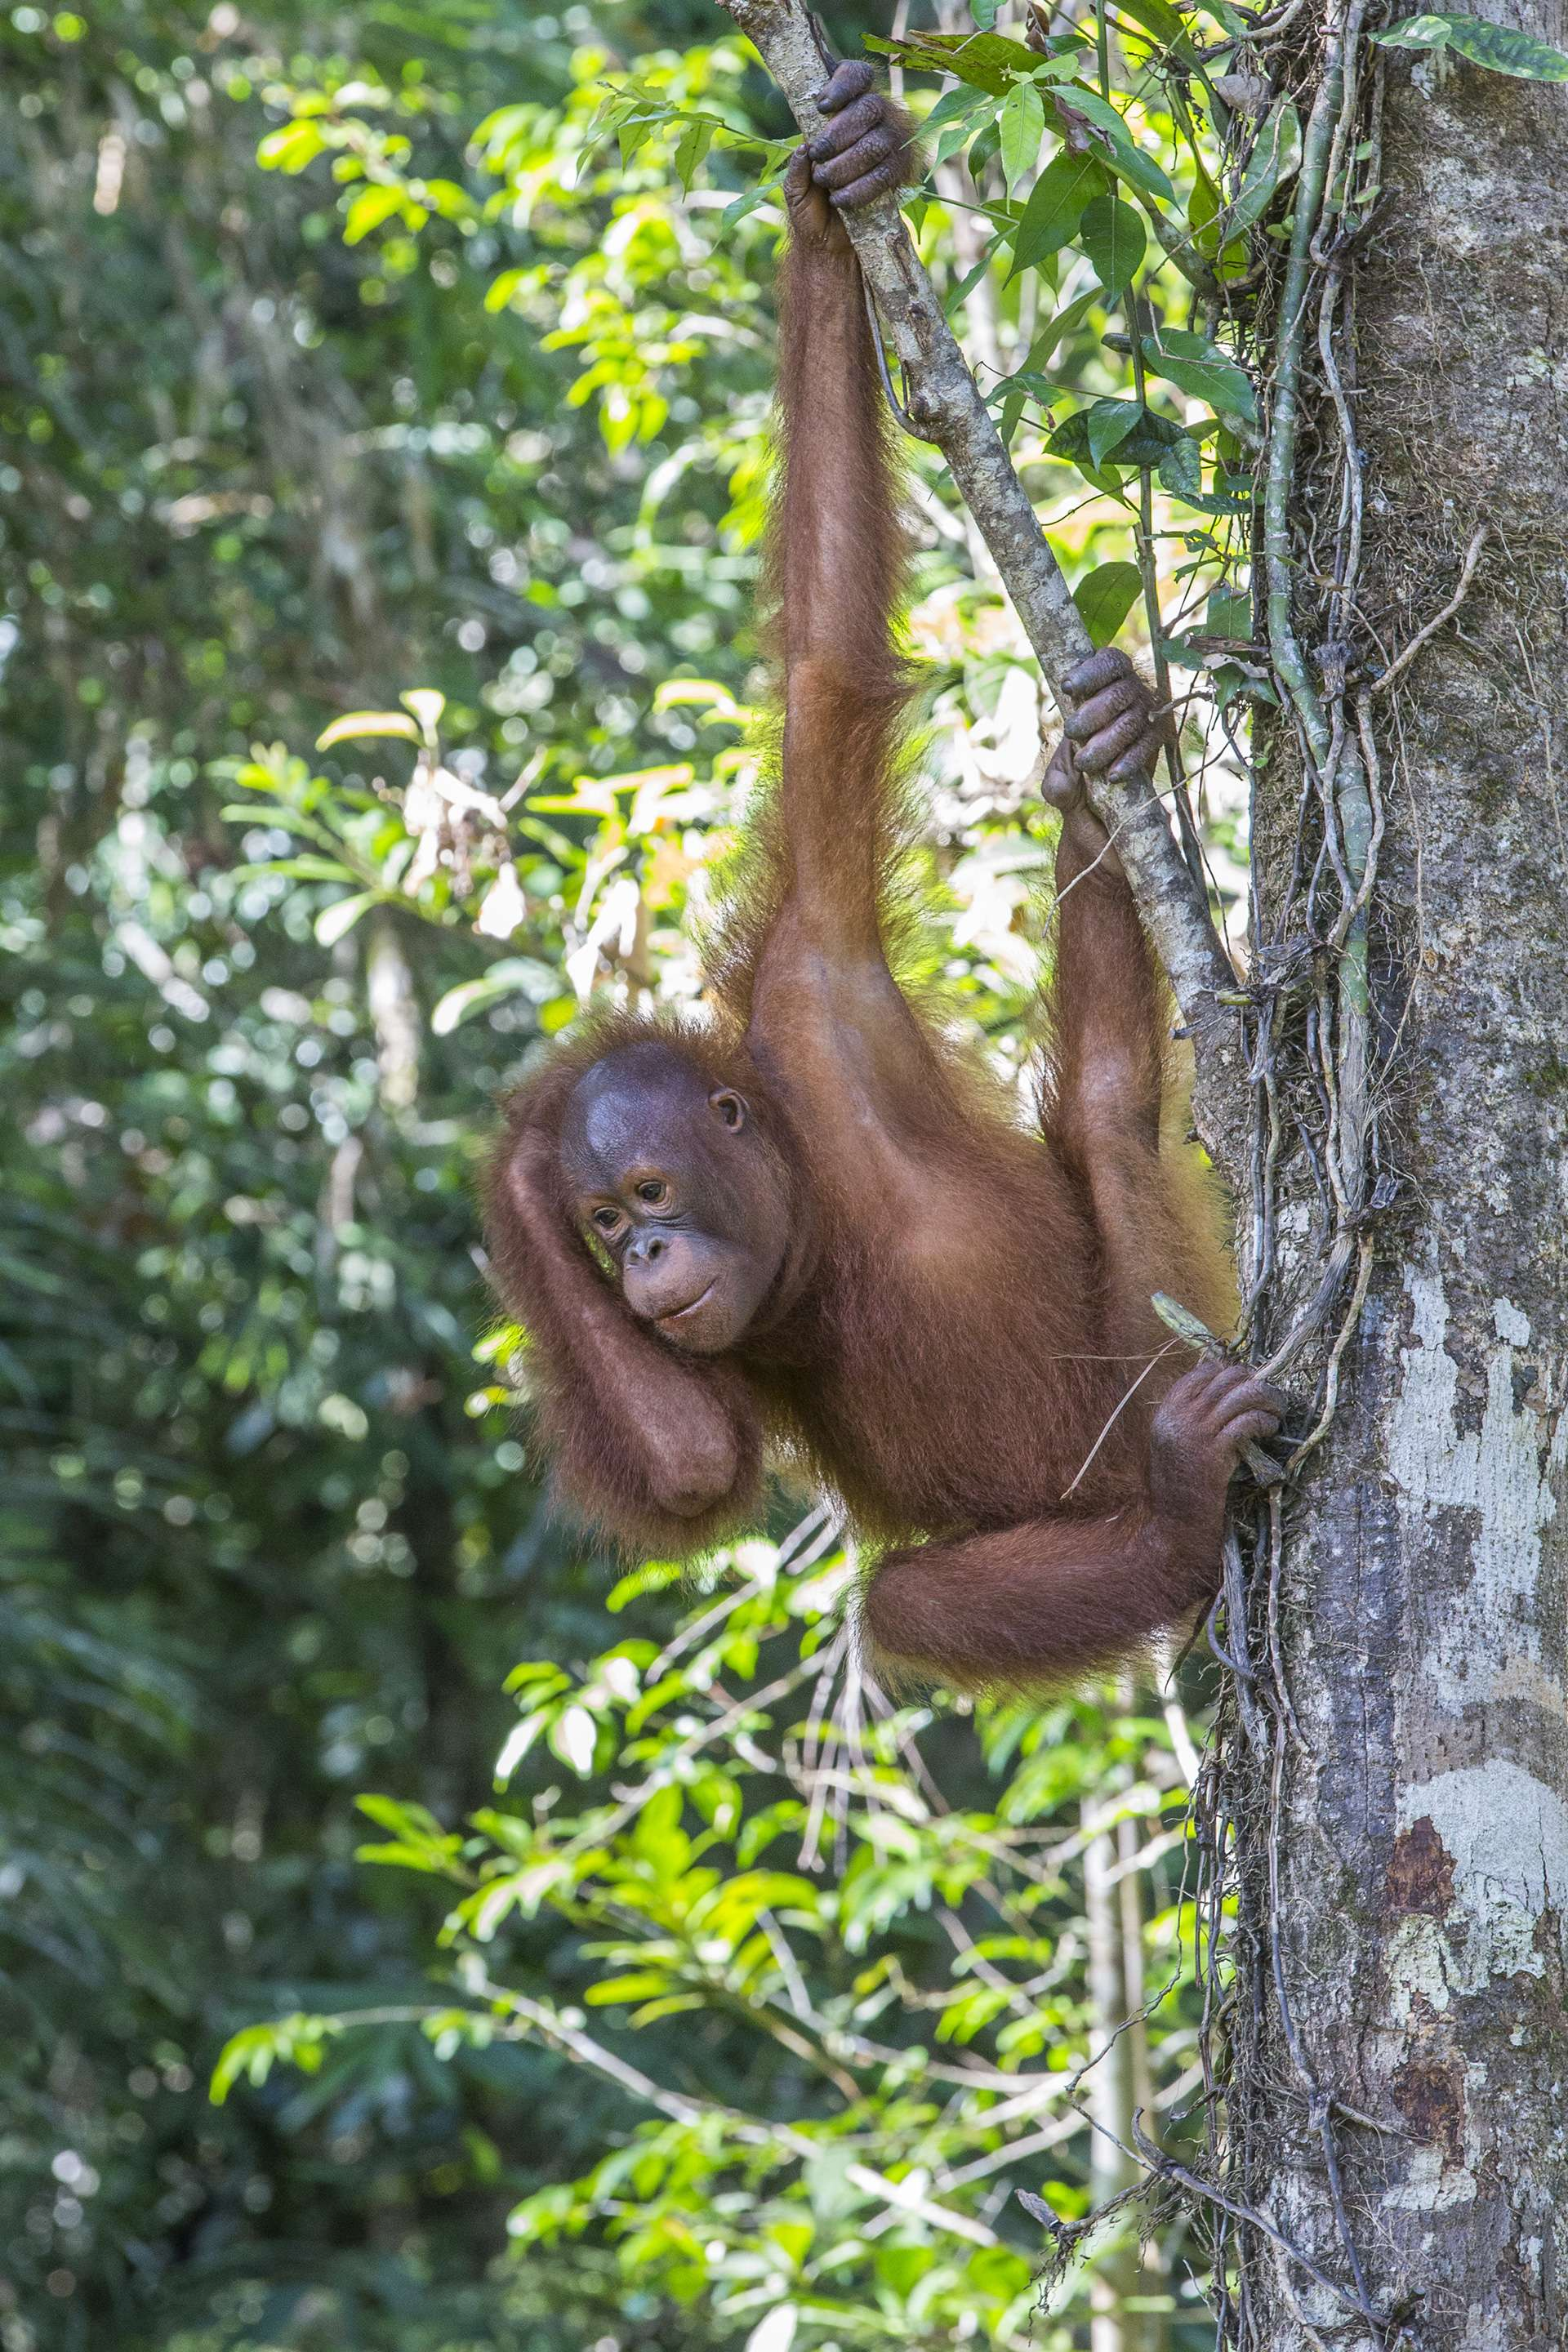 Gilles Martin's photograph of an orangutan from Borneo